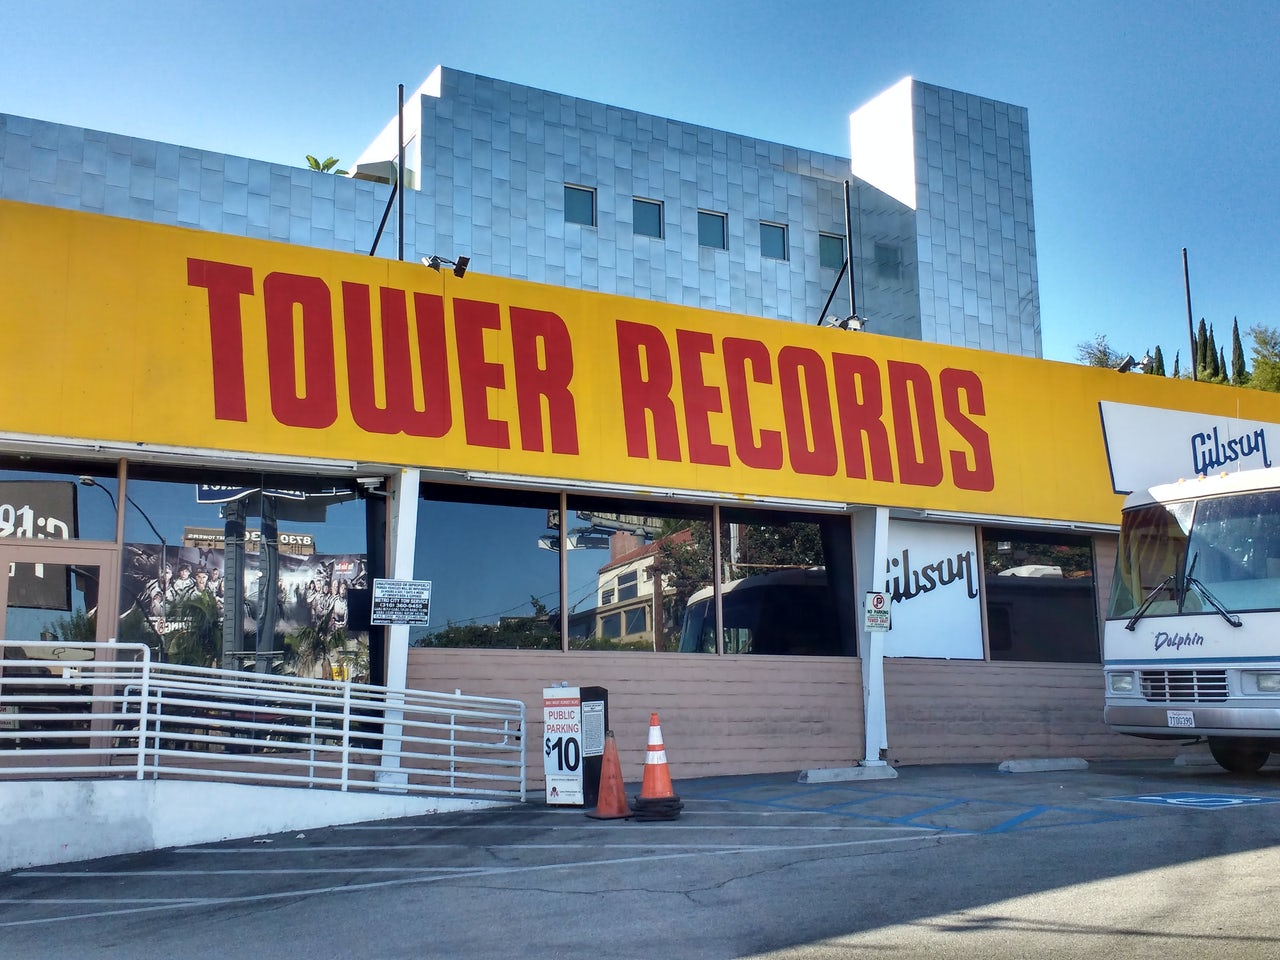 Music Stores Sacramento : the man behind tower records the first great chain record store has died the outline ~ Russianpoet.info Haus und Dekorationen